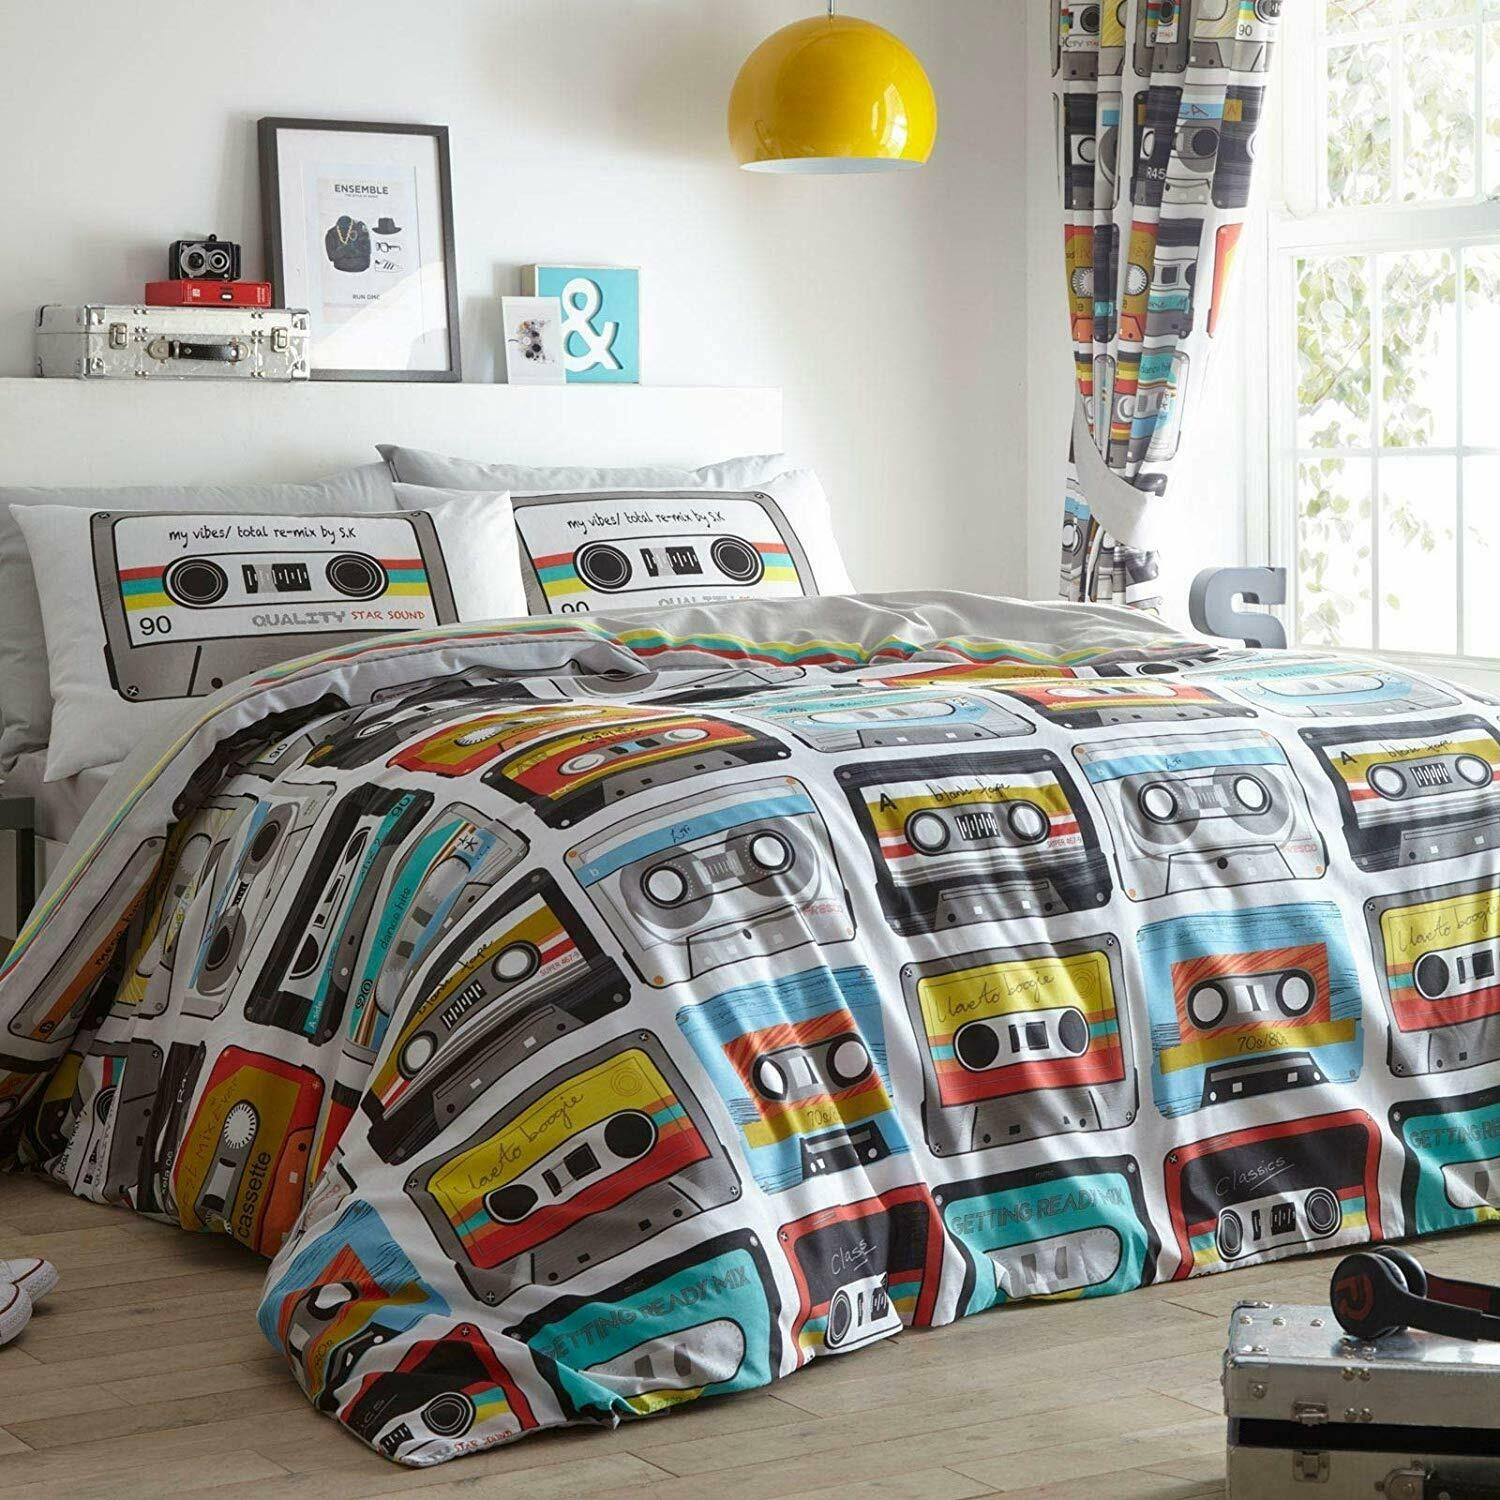 King Size Retro Vintage 80s Music Cassette Tape Design Duvet Cover & Matching Pillowcases